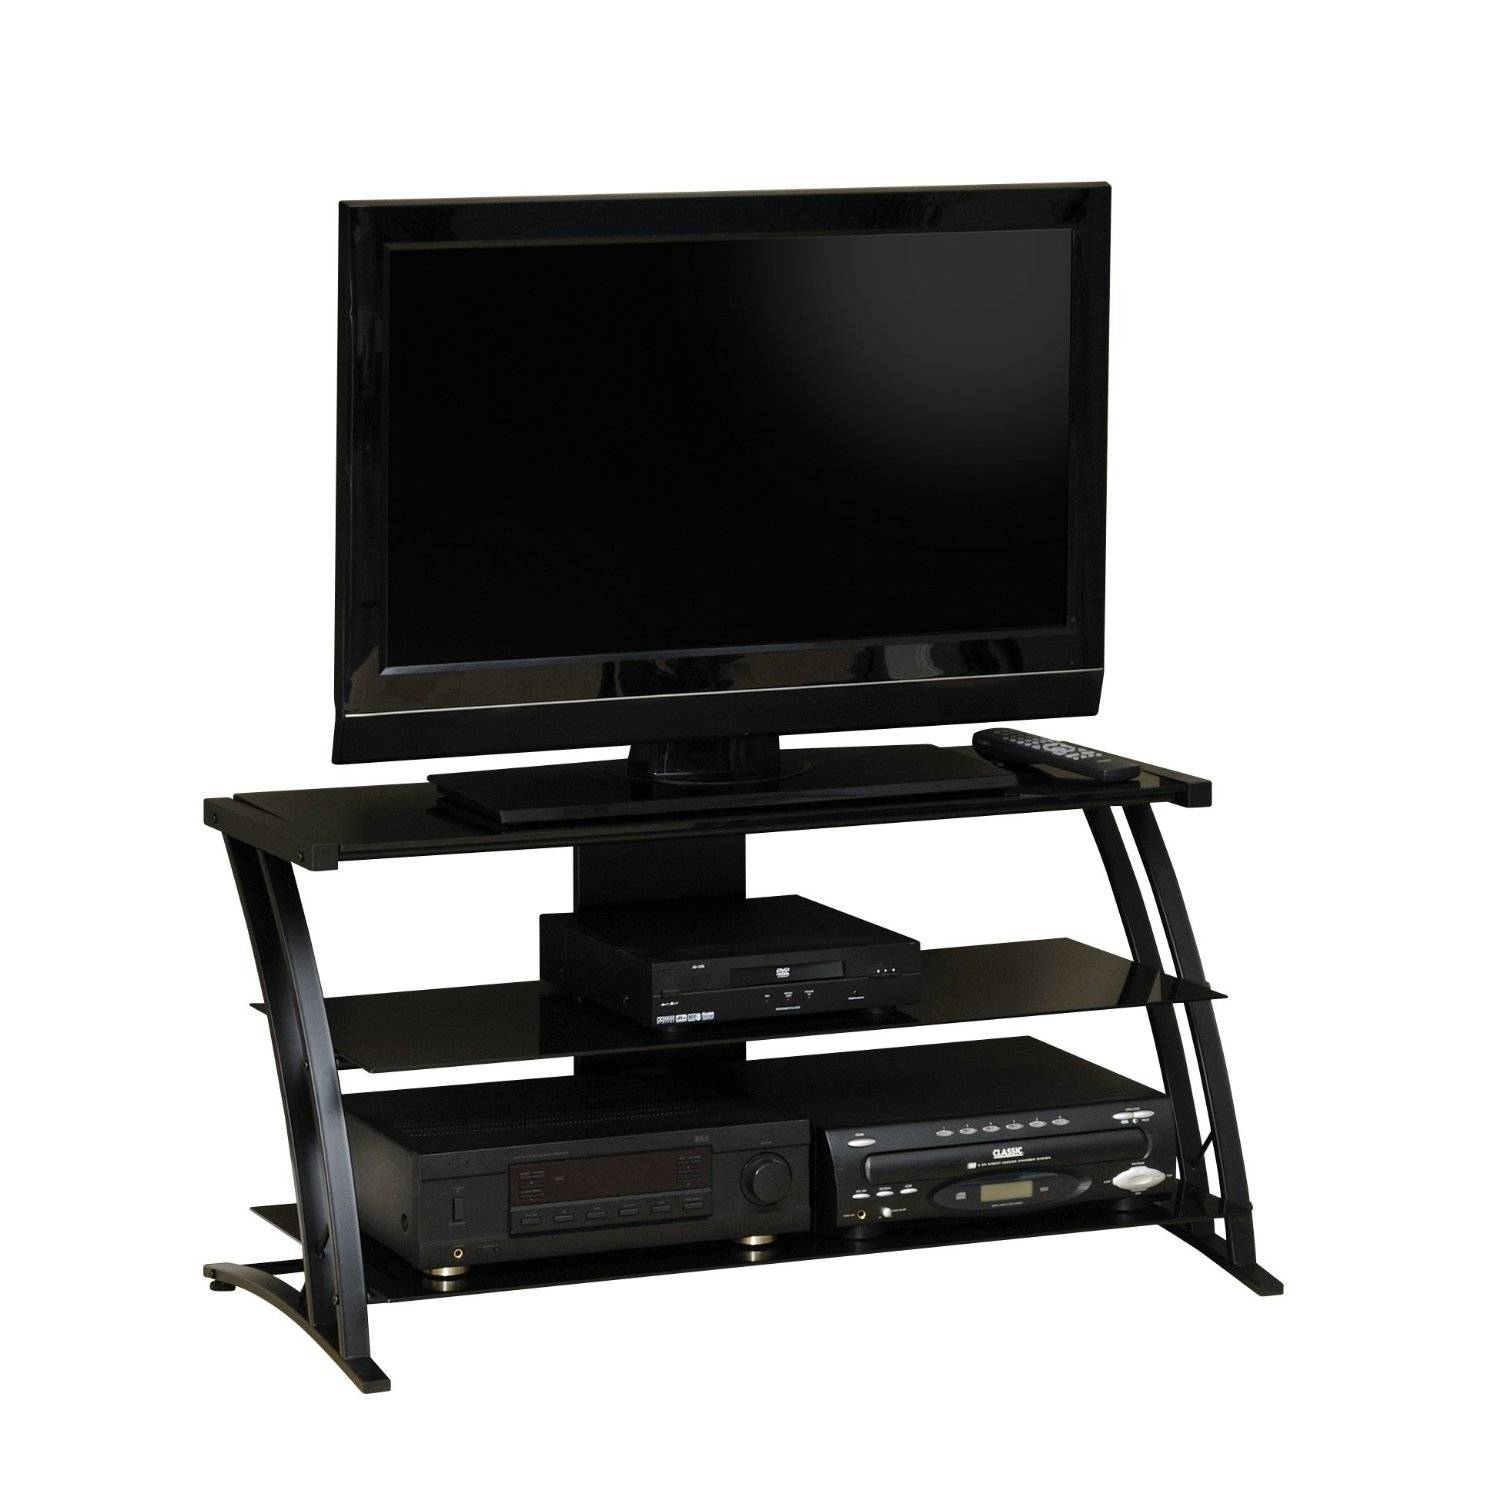 Three Tier Glass Shelves Tv Stand Using Curved Black Polished throughout Modern Glass Tv Stands (Image 9 of 15)